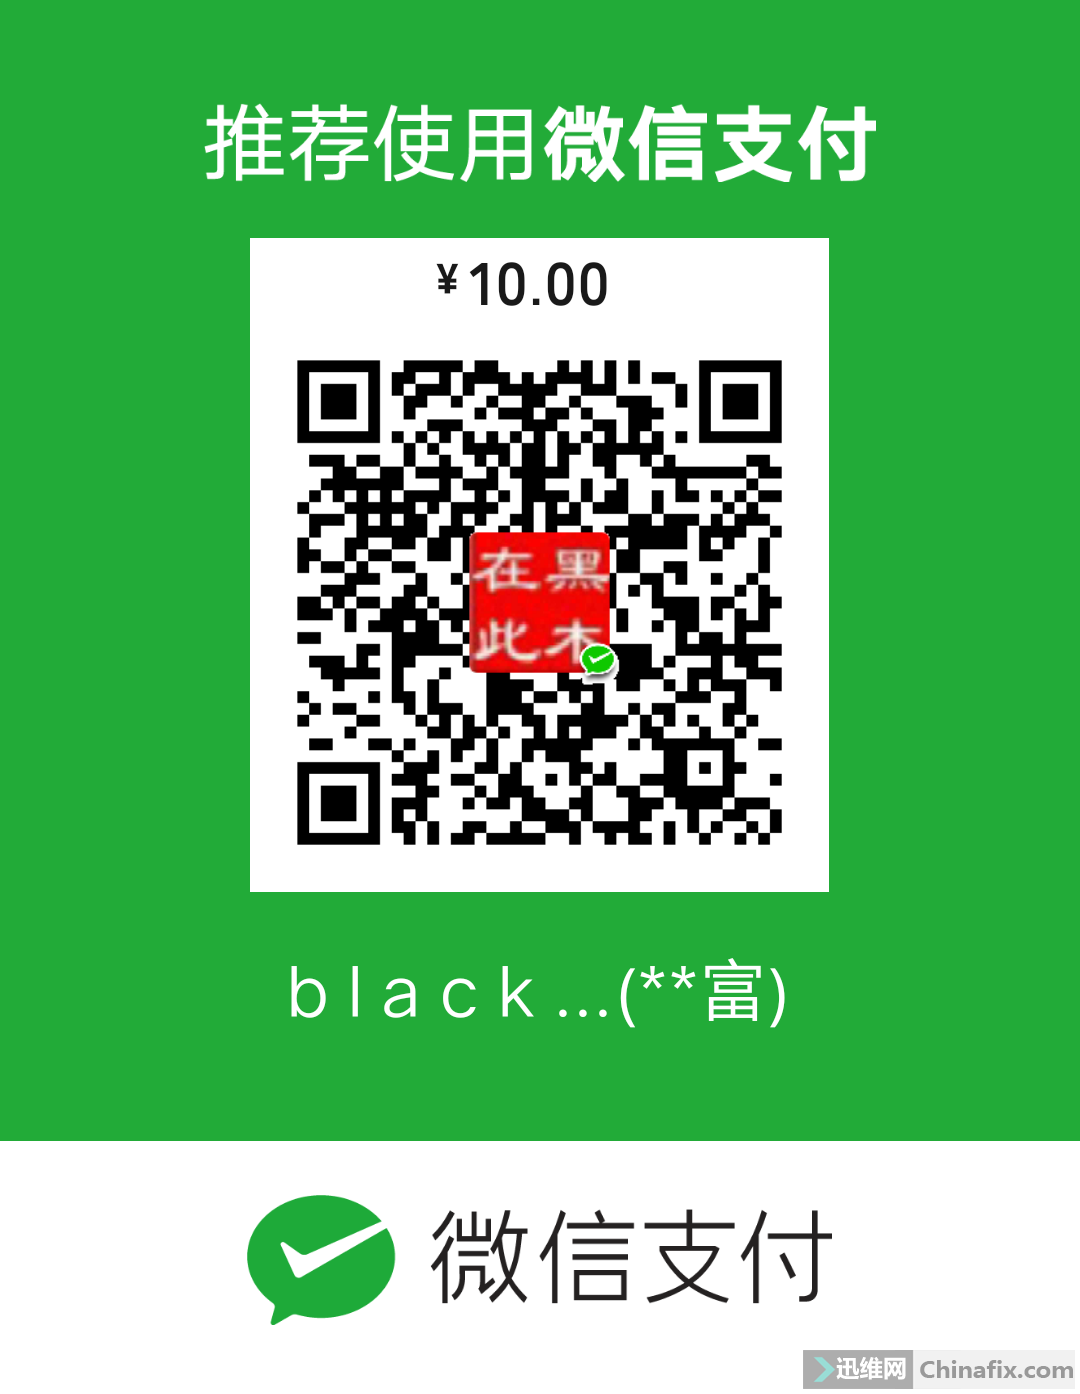 mm_facetoface_collect_qrcode_1613886948943.png